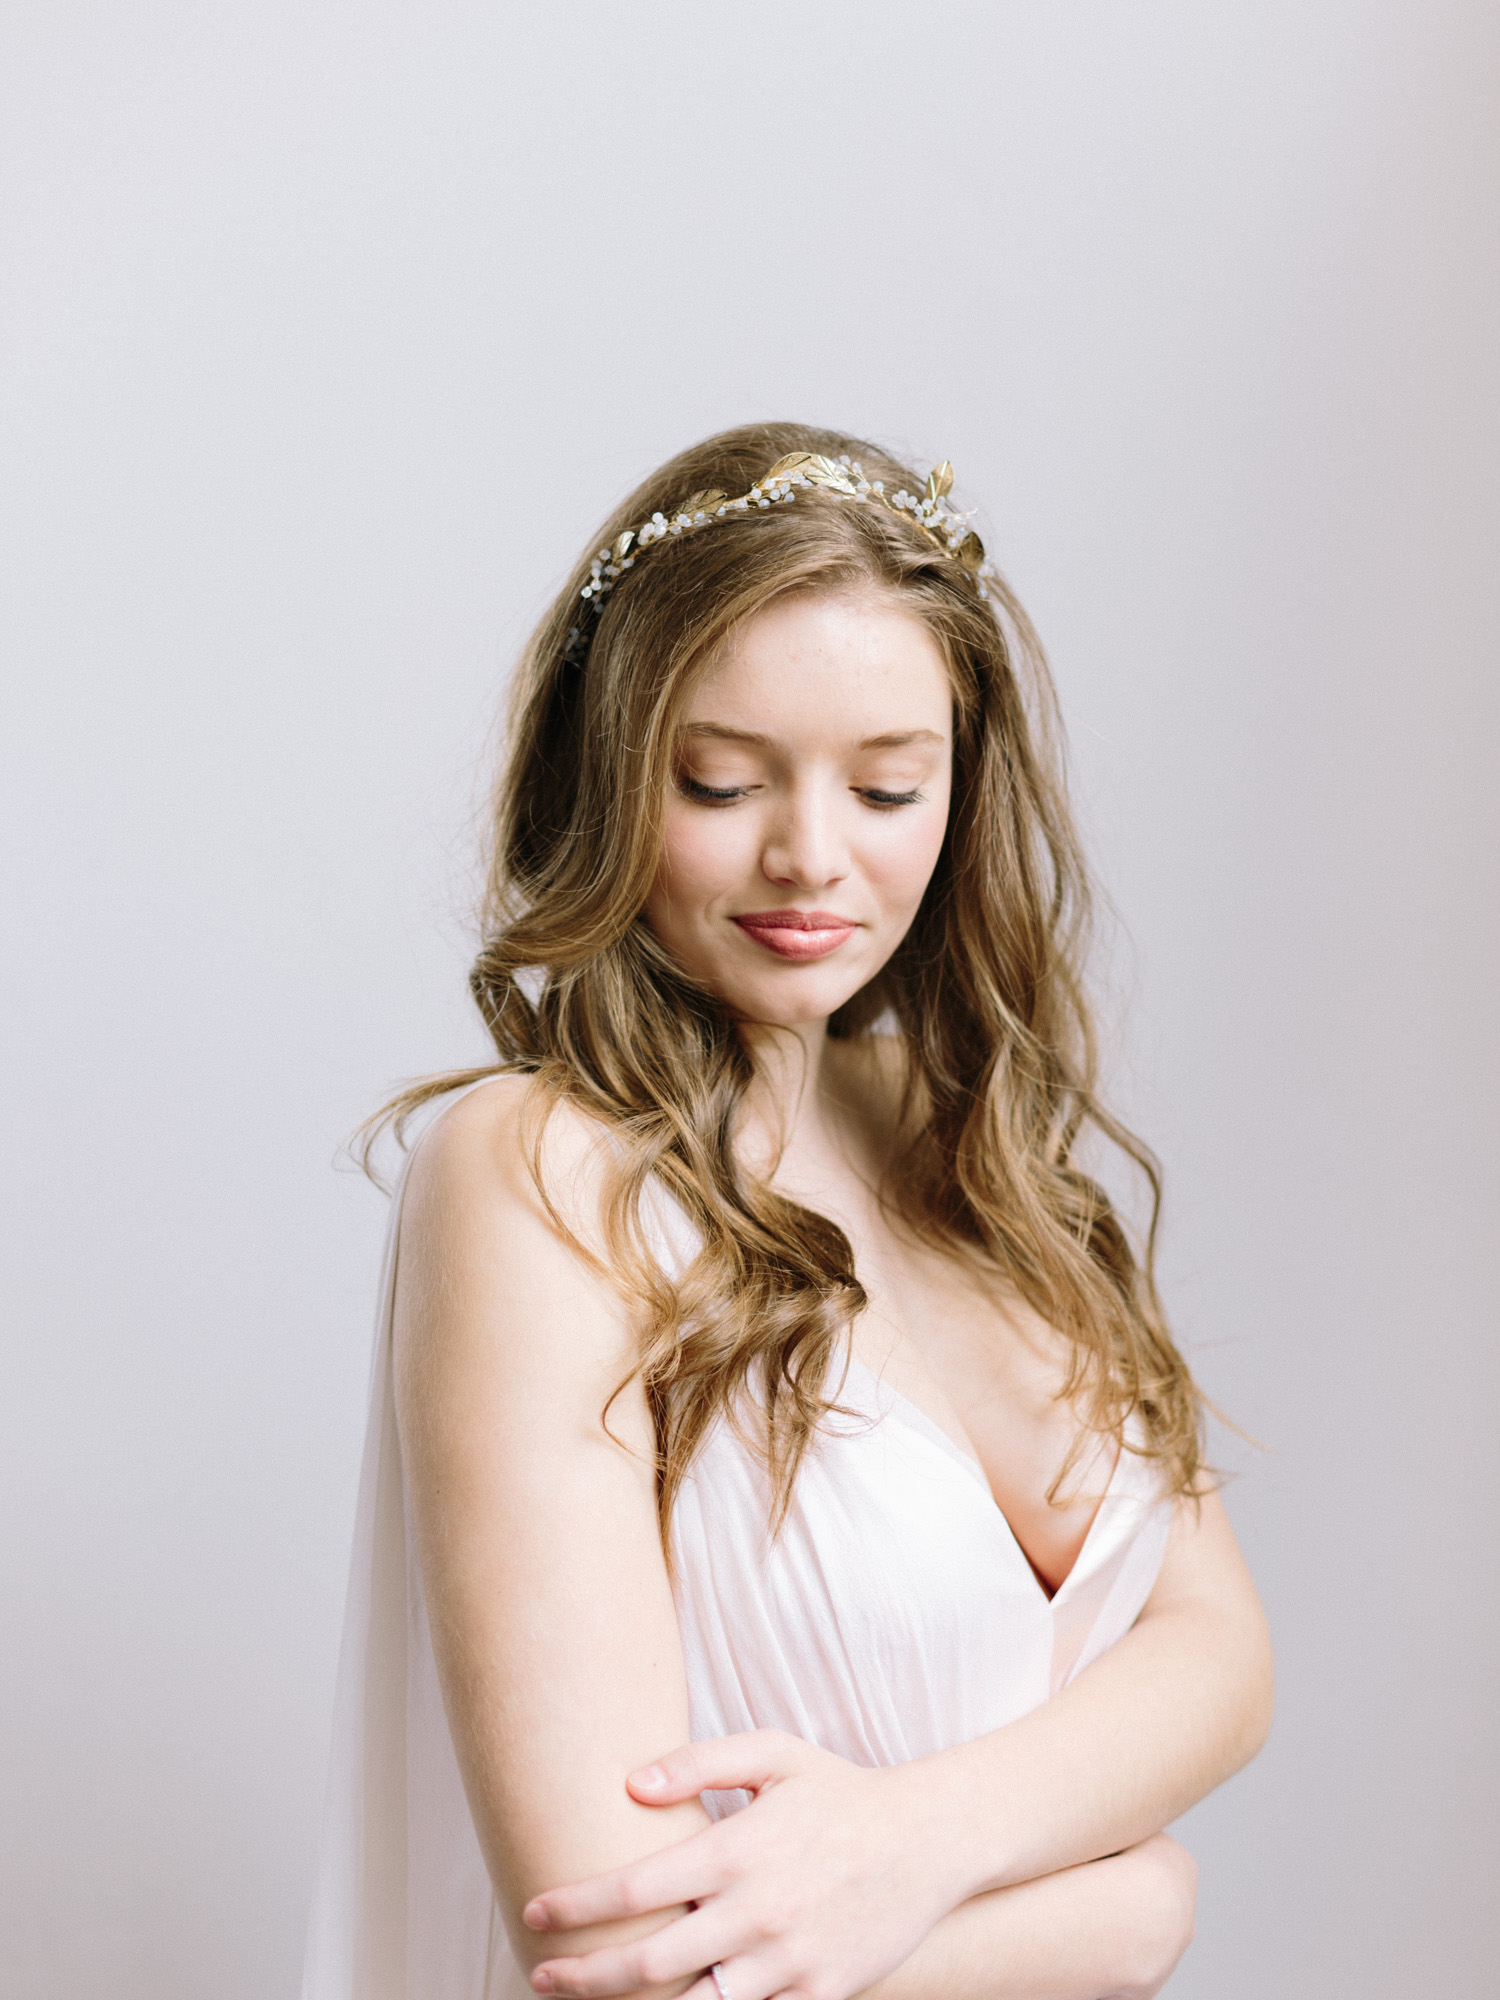 a beautiful bride in a blush silk Leanne Marshall wedding gown and gold headpiece smiles serenely with her eyes closed